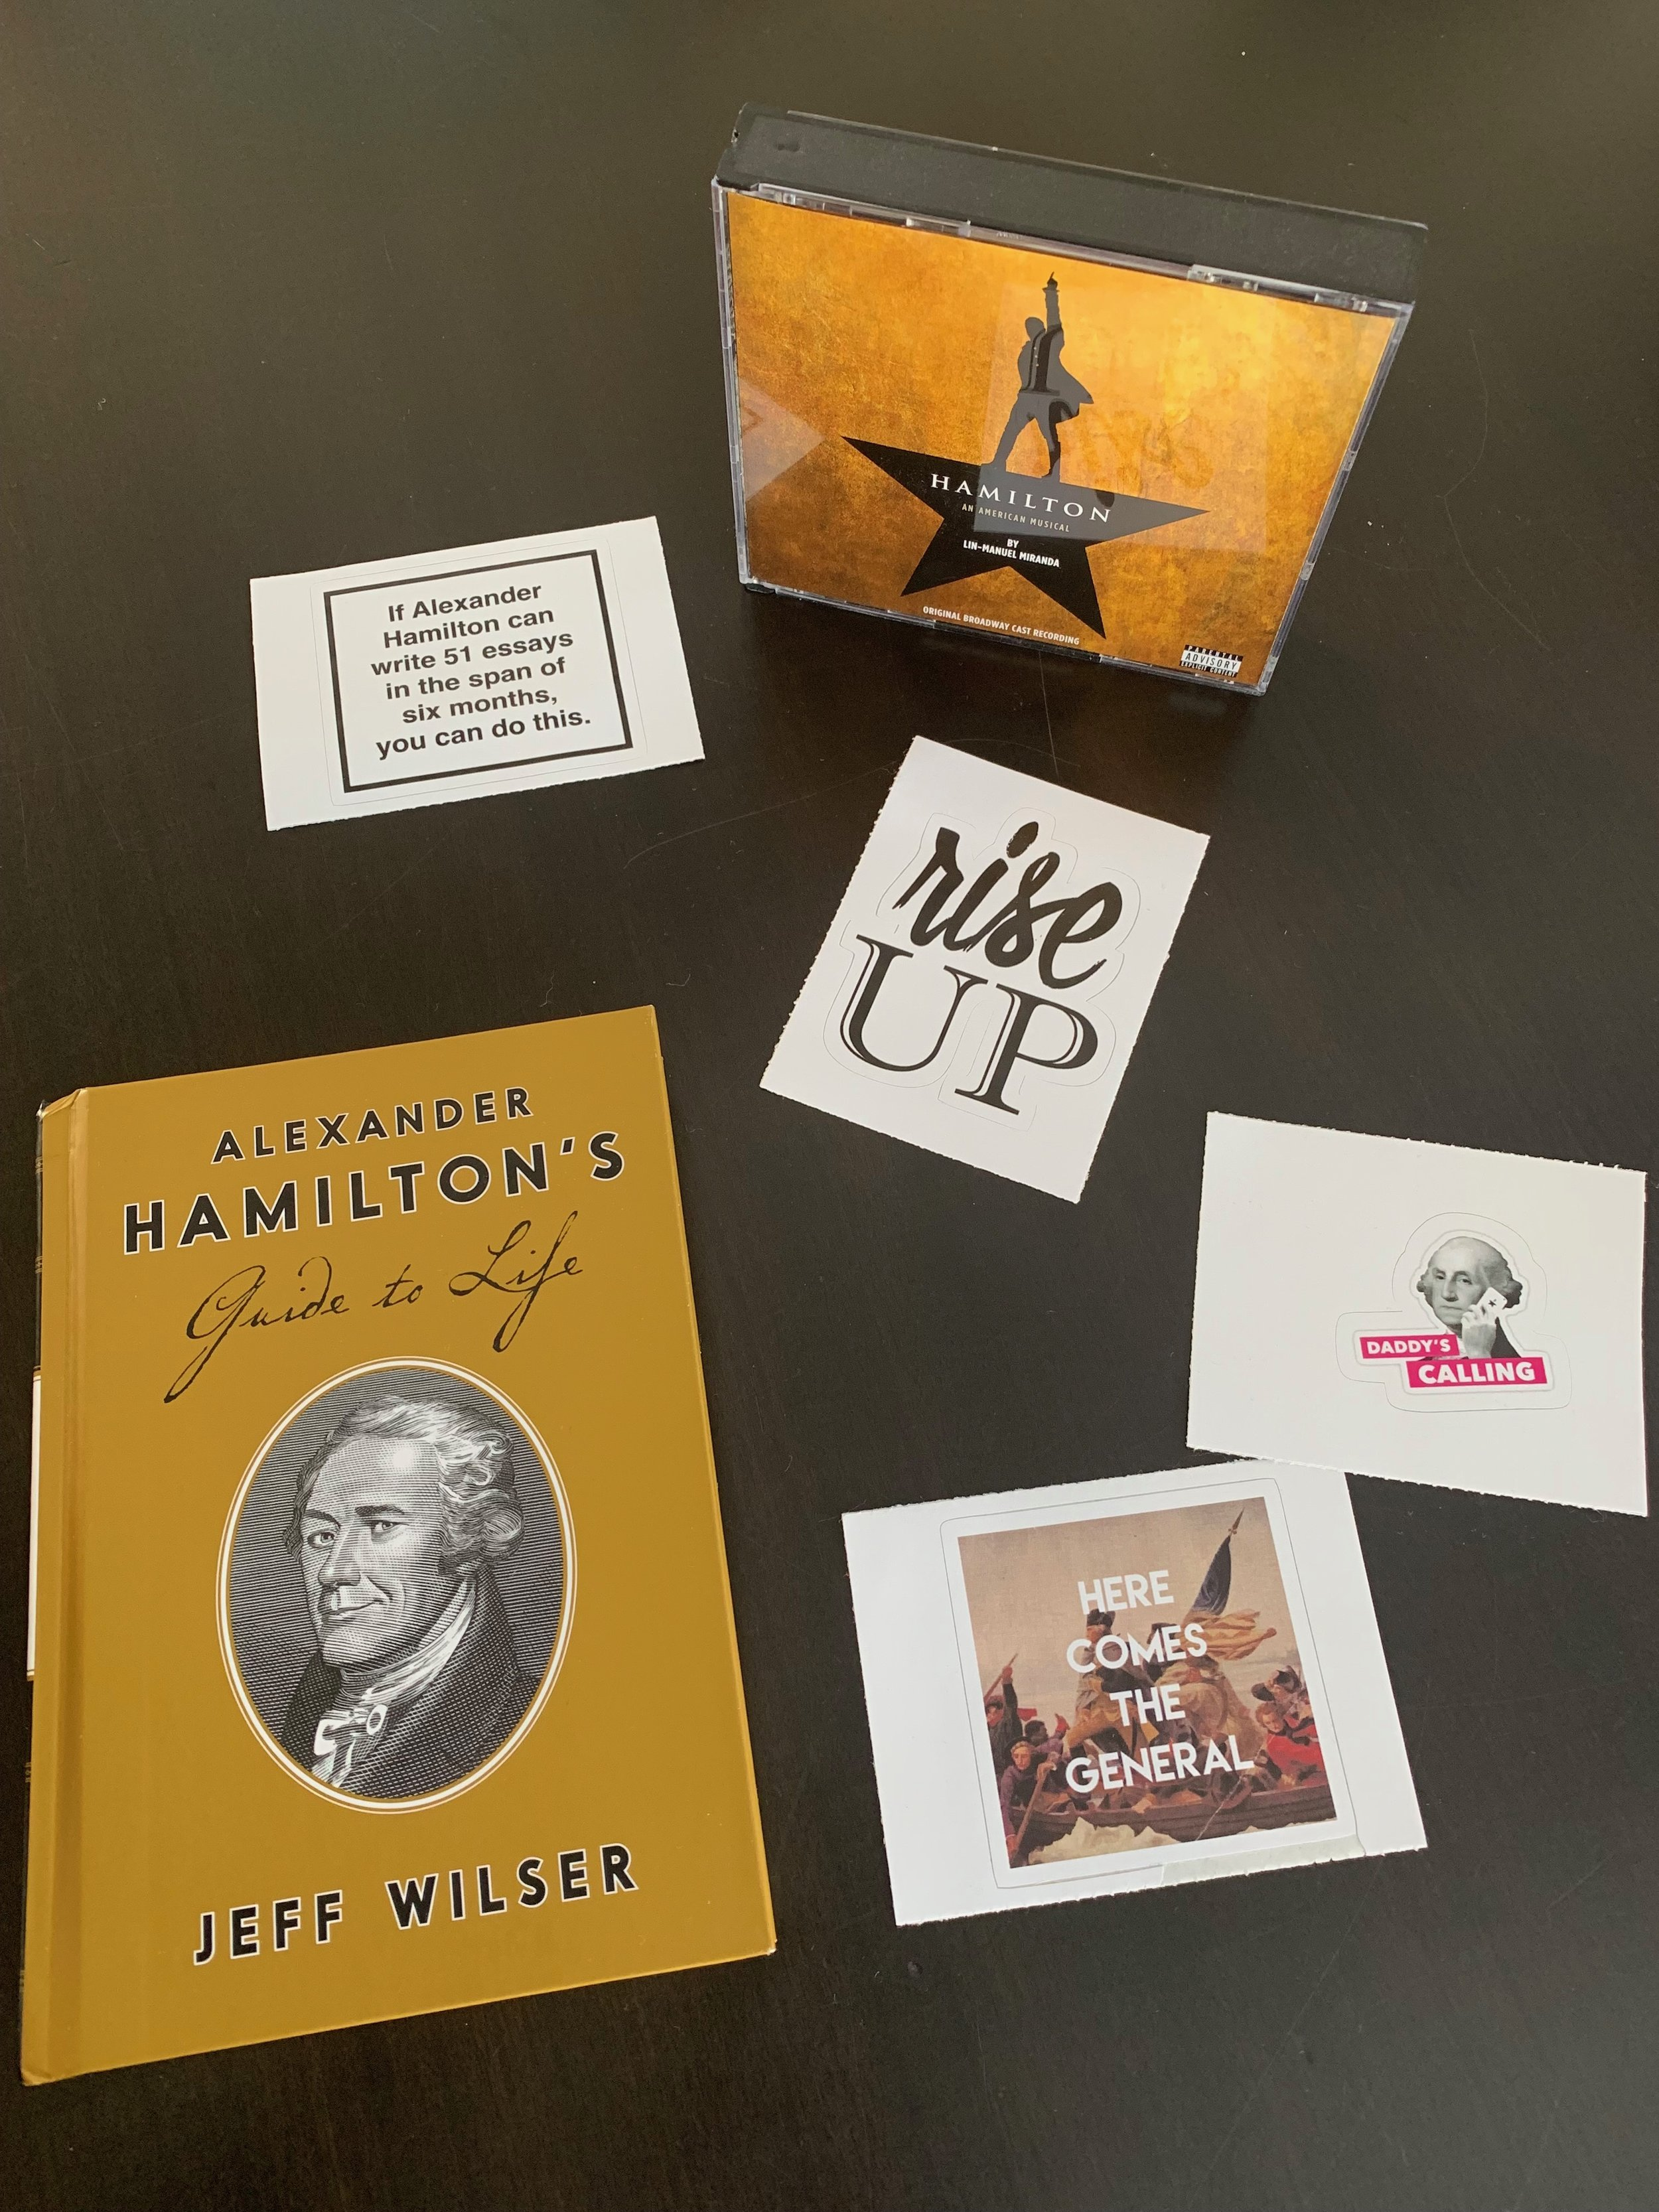 """P.S. In case you need to  pinch  a Hamilton fan in your life here are some fun items. 1)The CDs are second best to seeing the musical in person. 2)There are tons of stickers from  Red Bubble  - the one that hangs on my bulletin board is """"If Alexander Hamilton can write 51 essays in a span of six months you can do this."""" - Motivating. 3) I bought the Guide To Life book at Patina but I'm sure you know where else you can find a copy."""